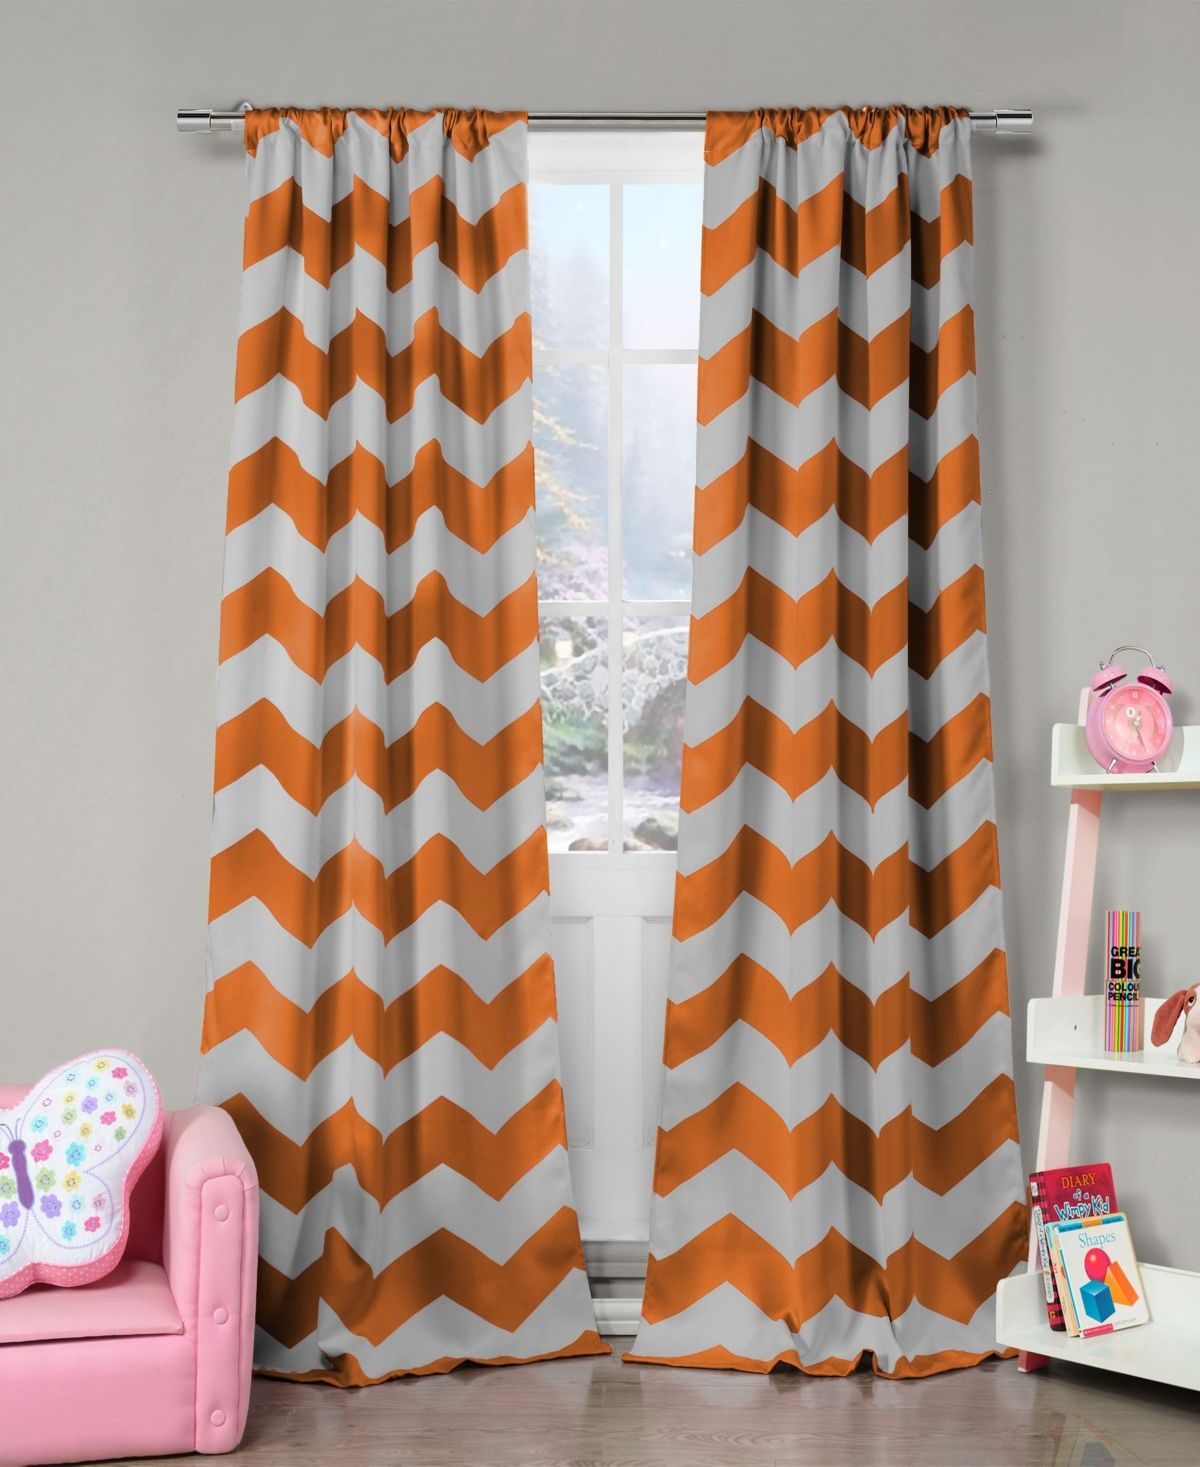 Duck River Textile Fifika 39 In 2020 Orange And Grey Curtains Curtains Blackout Curtains